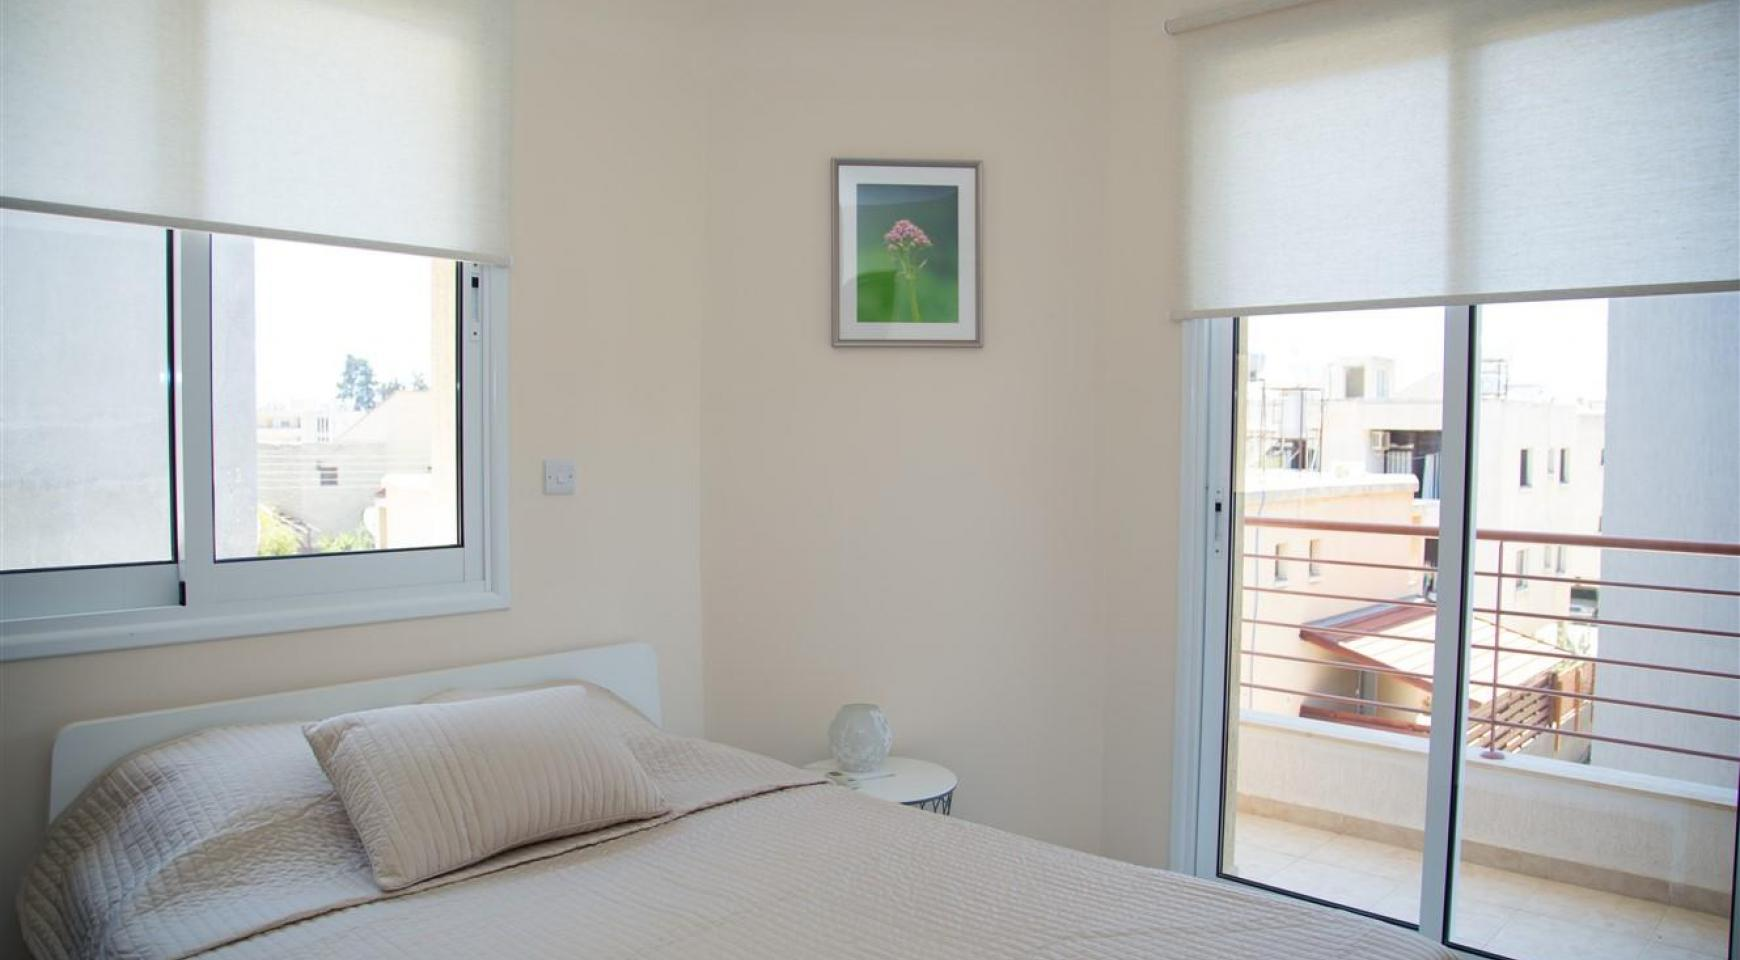 Luxury One Bedroom Apartment Frida 203 in the Tourist Area - 8